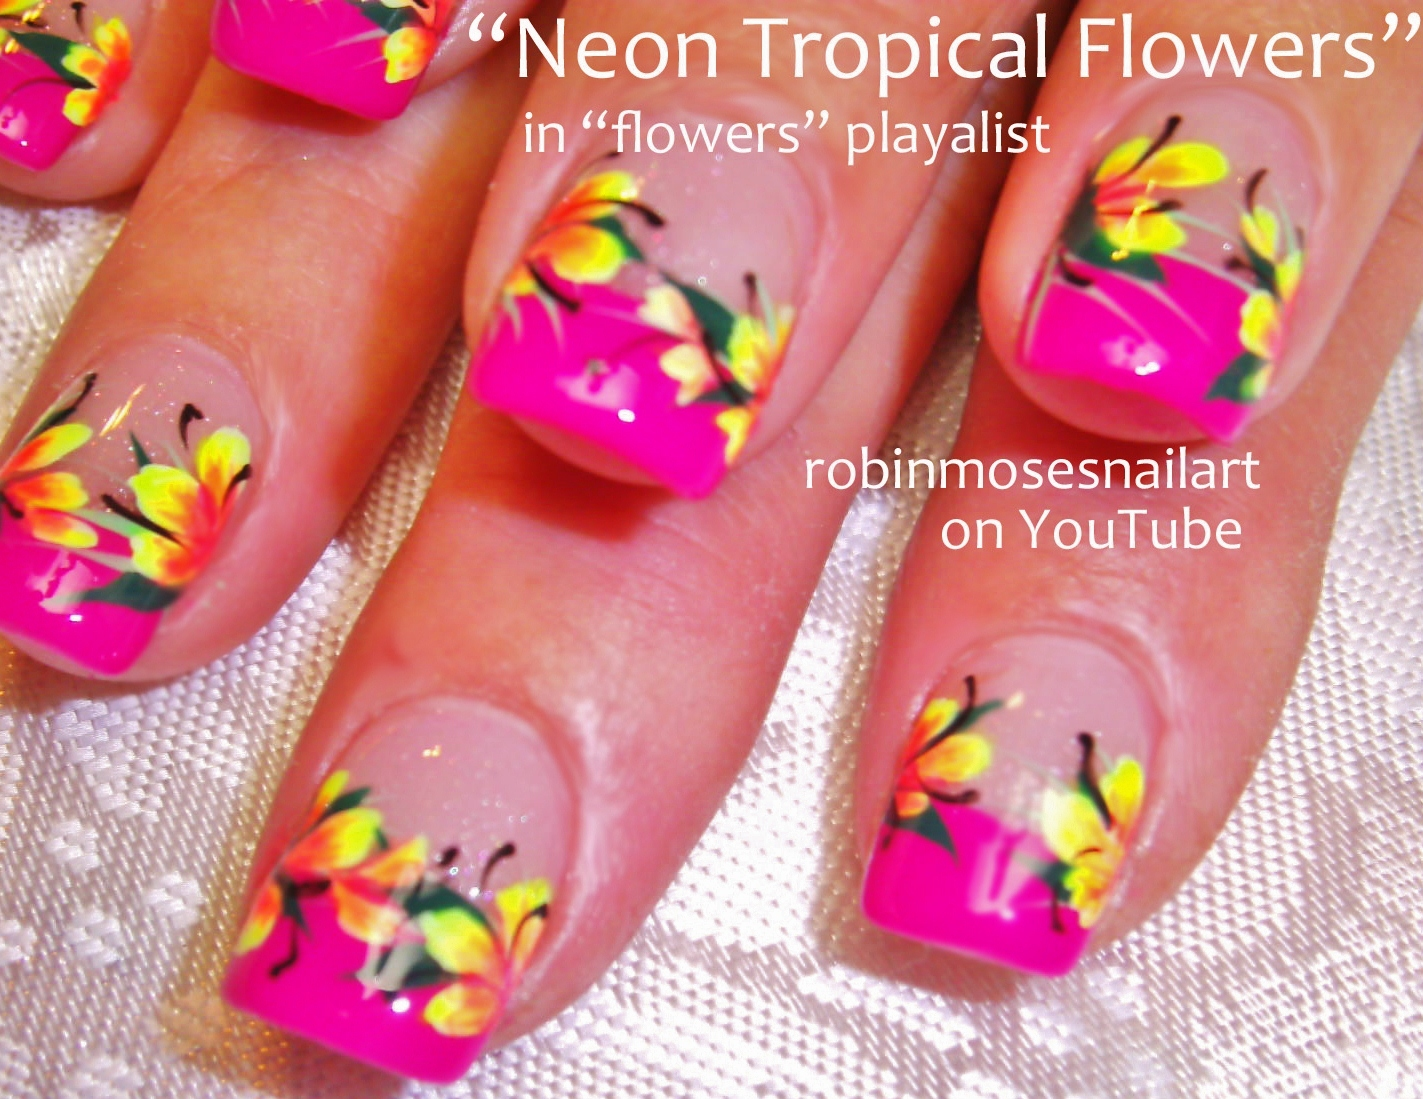 Robin Moses Nail Art: Cutest Nail Art, cutest Neon Bright ...